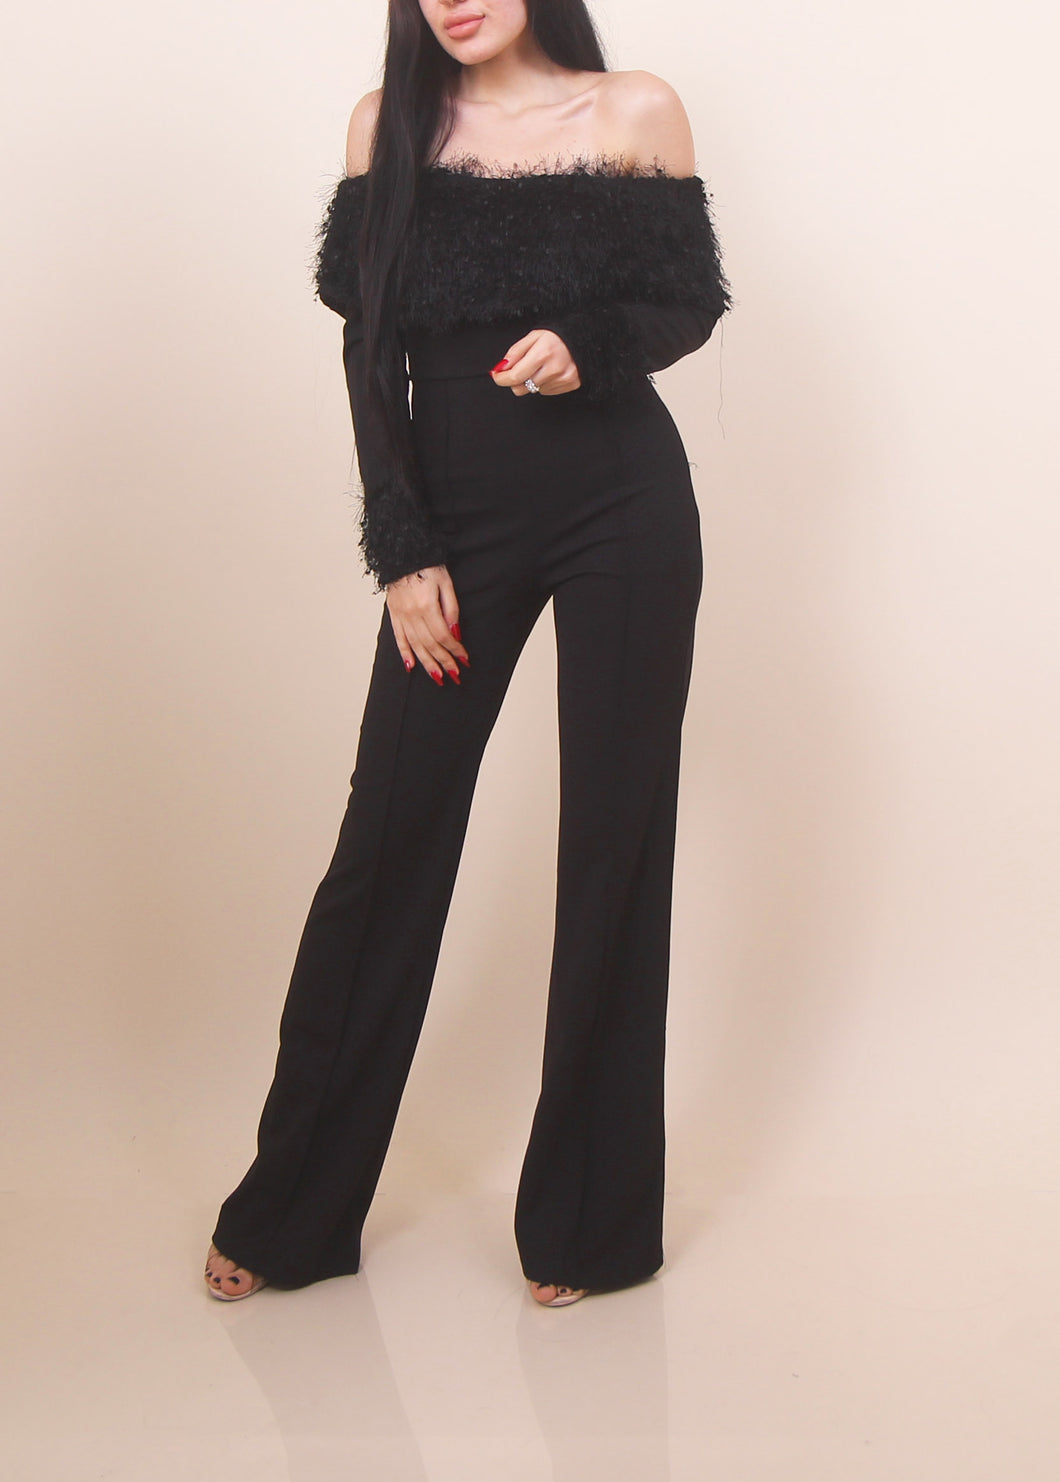 'ZARA' Jumpsuit - Black